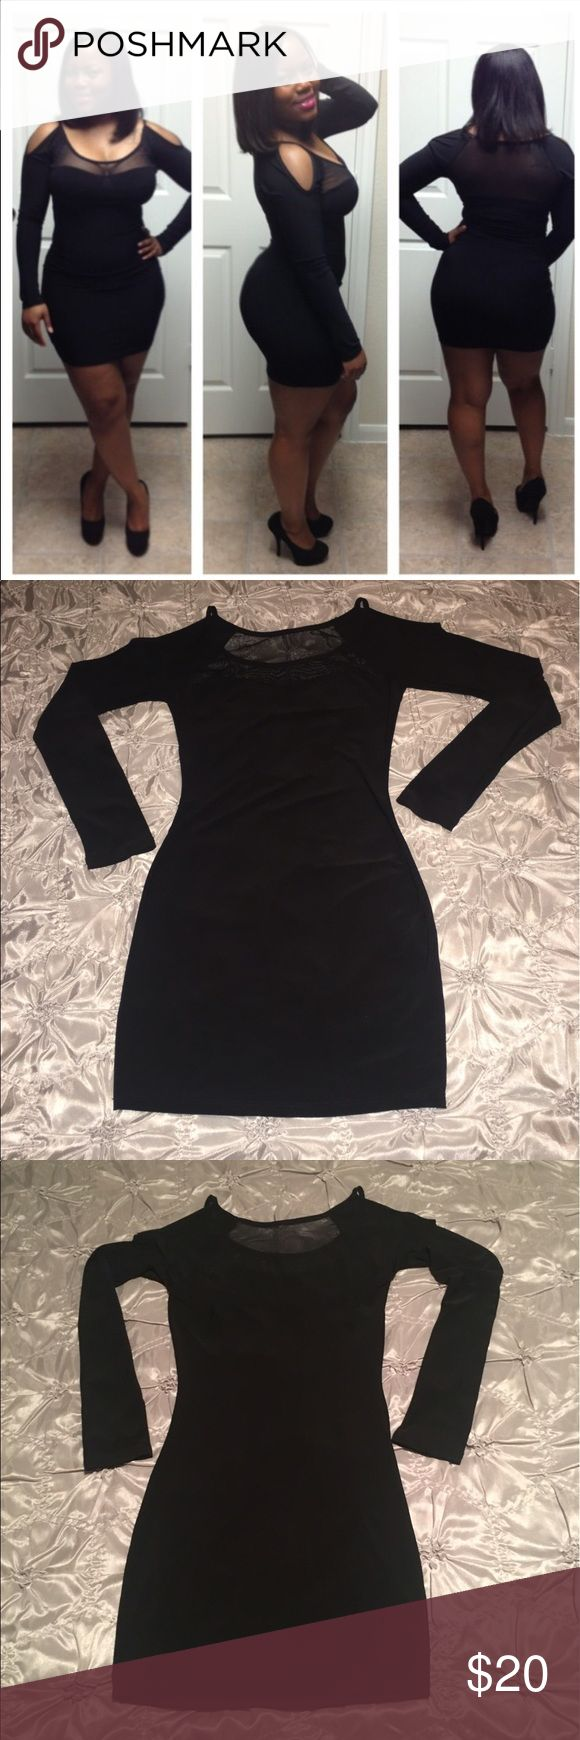 Sexy Little Black Dress! Sexy little black dress with sheer, mesh sweetheart top. Long sleeves. No zippers, hooks or closures. 92% Polyester 8% Spandex. Only worn once! Dresses Mini